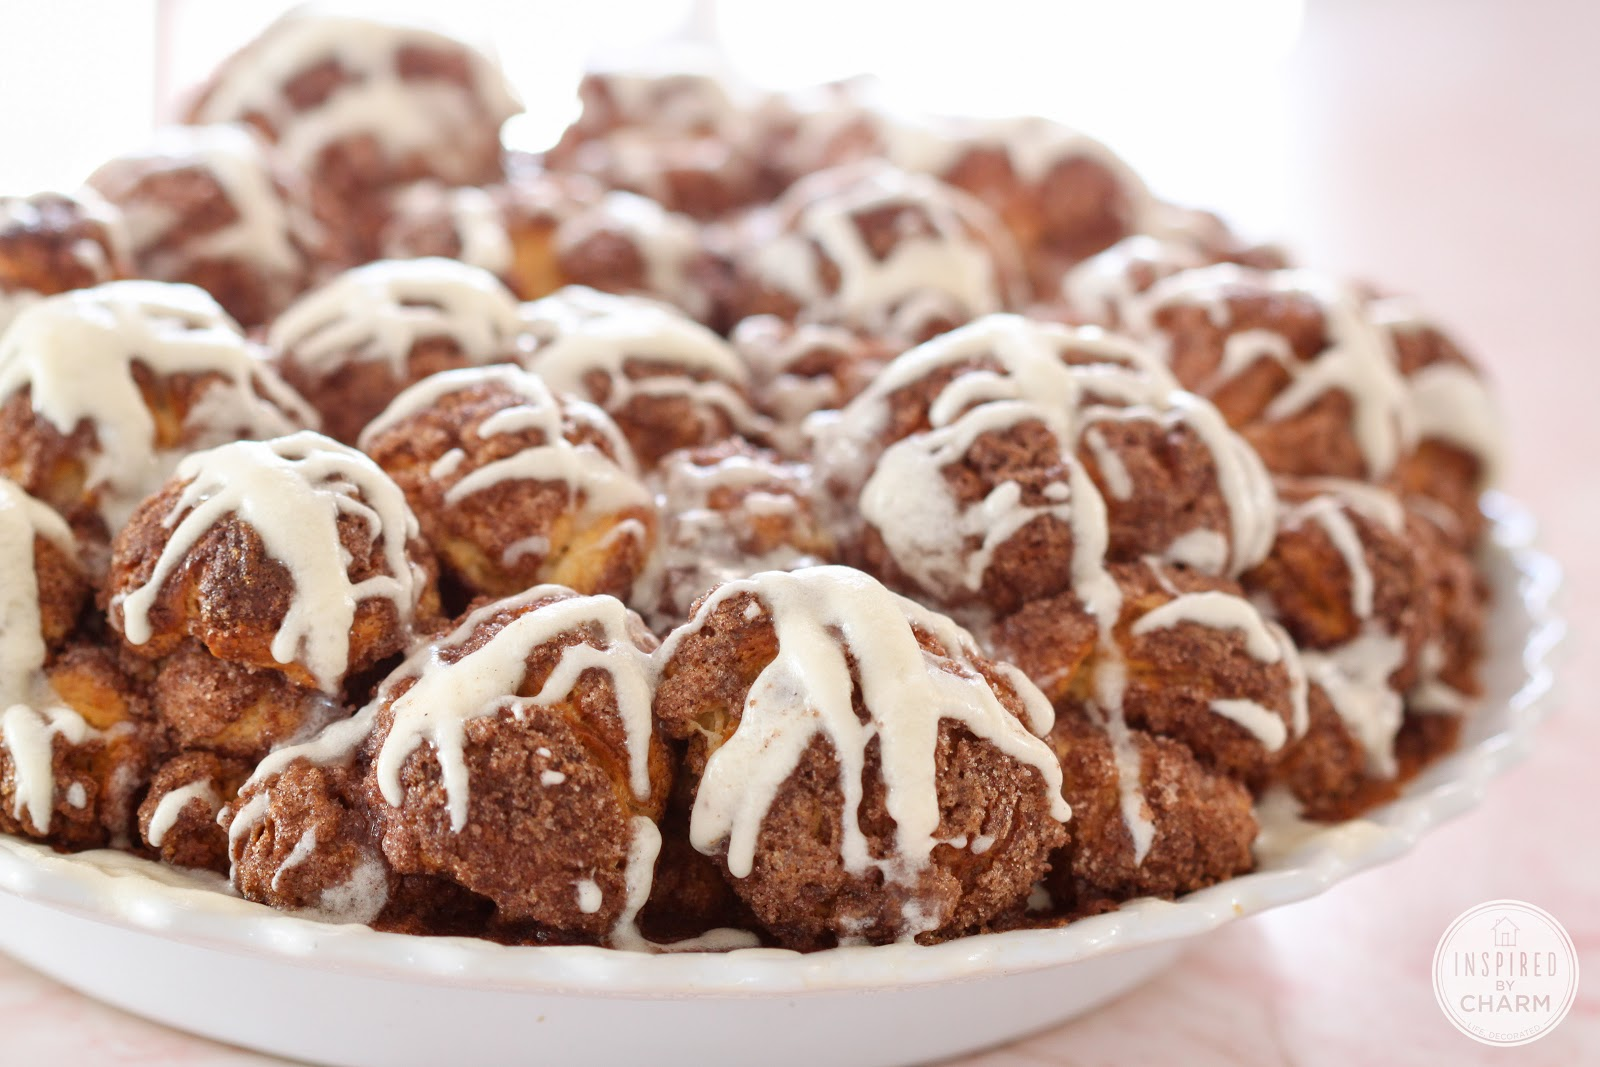 ... do you think of these Cinnamon Bun Bites? Will you be making them